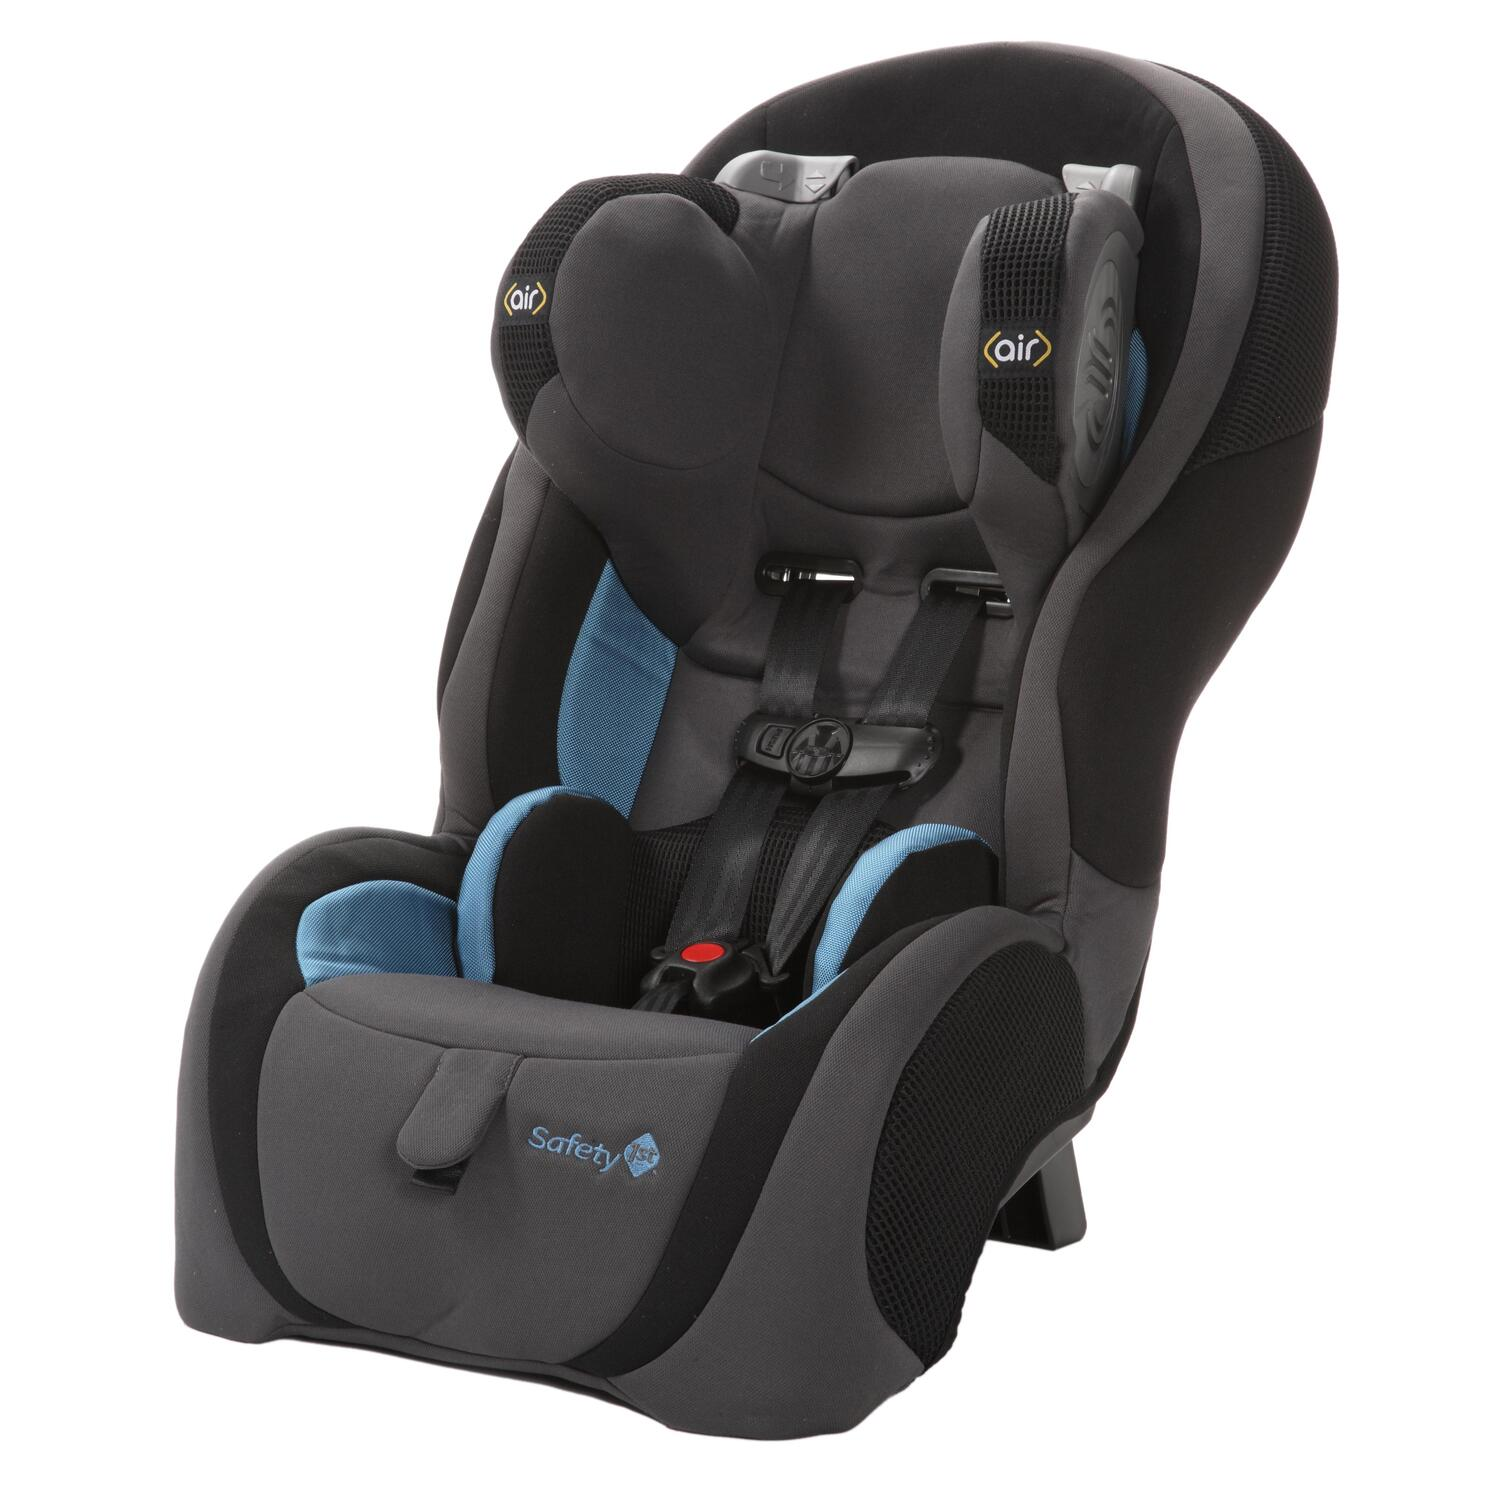 safety 1st safety 1st complete air 65 convertible car seat great lakes by oj commerce. Black Bedroom Furniture Sets. Home Design Ideas